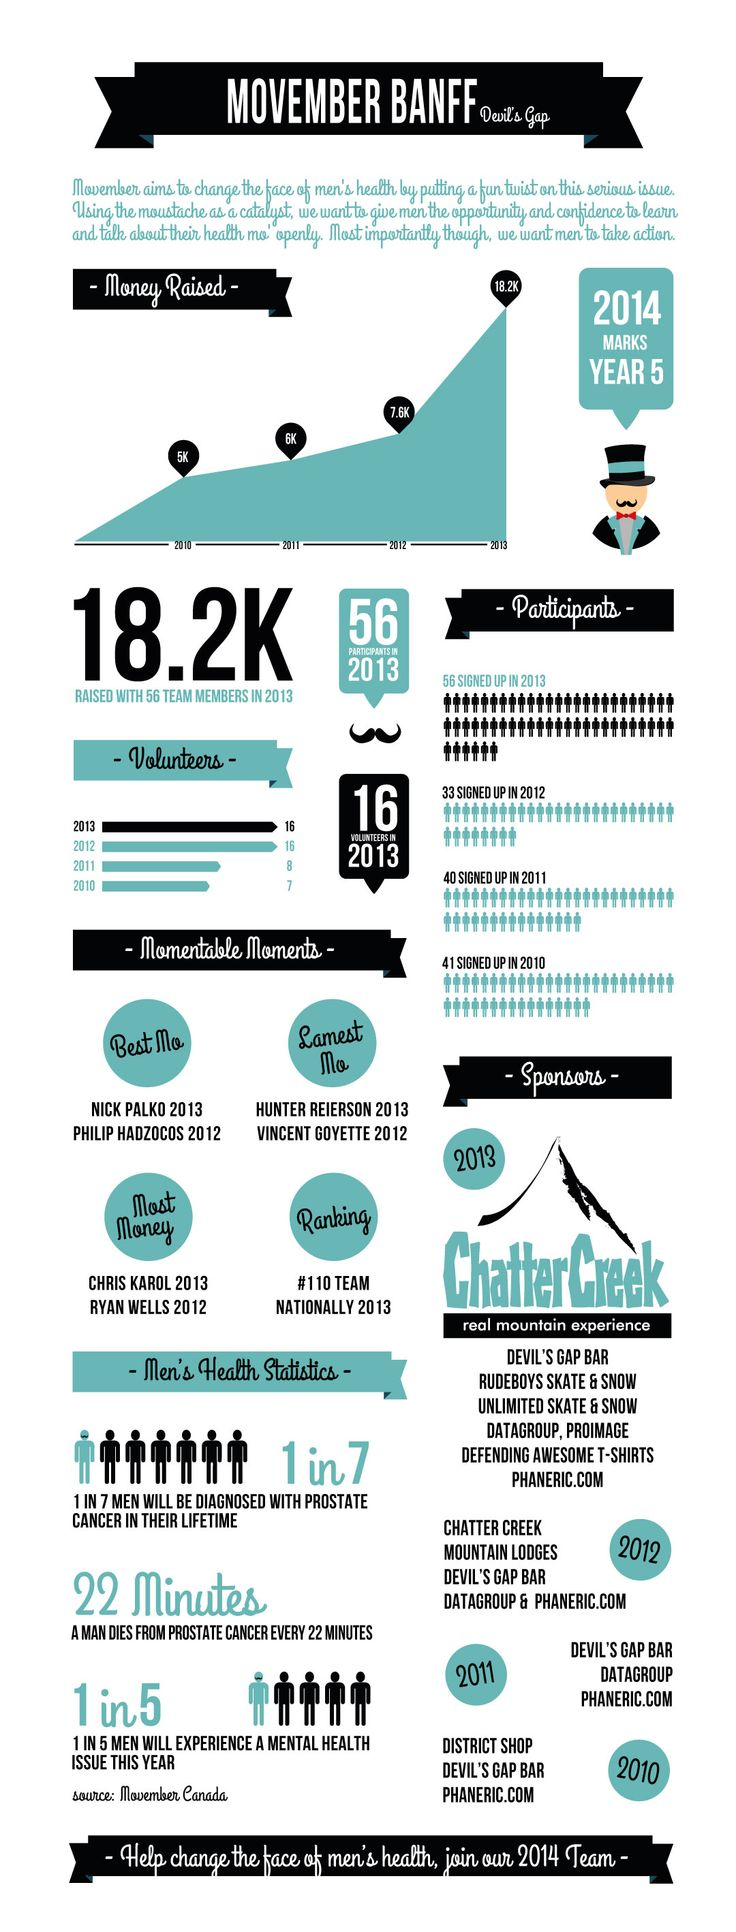 Movember Banff Infographic #movember #banff #infographic #fundraiser